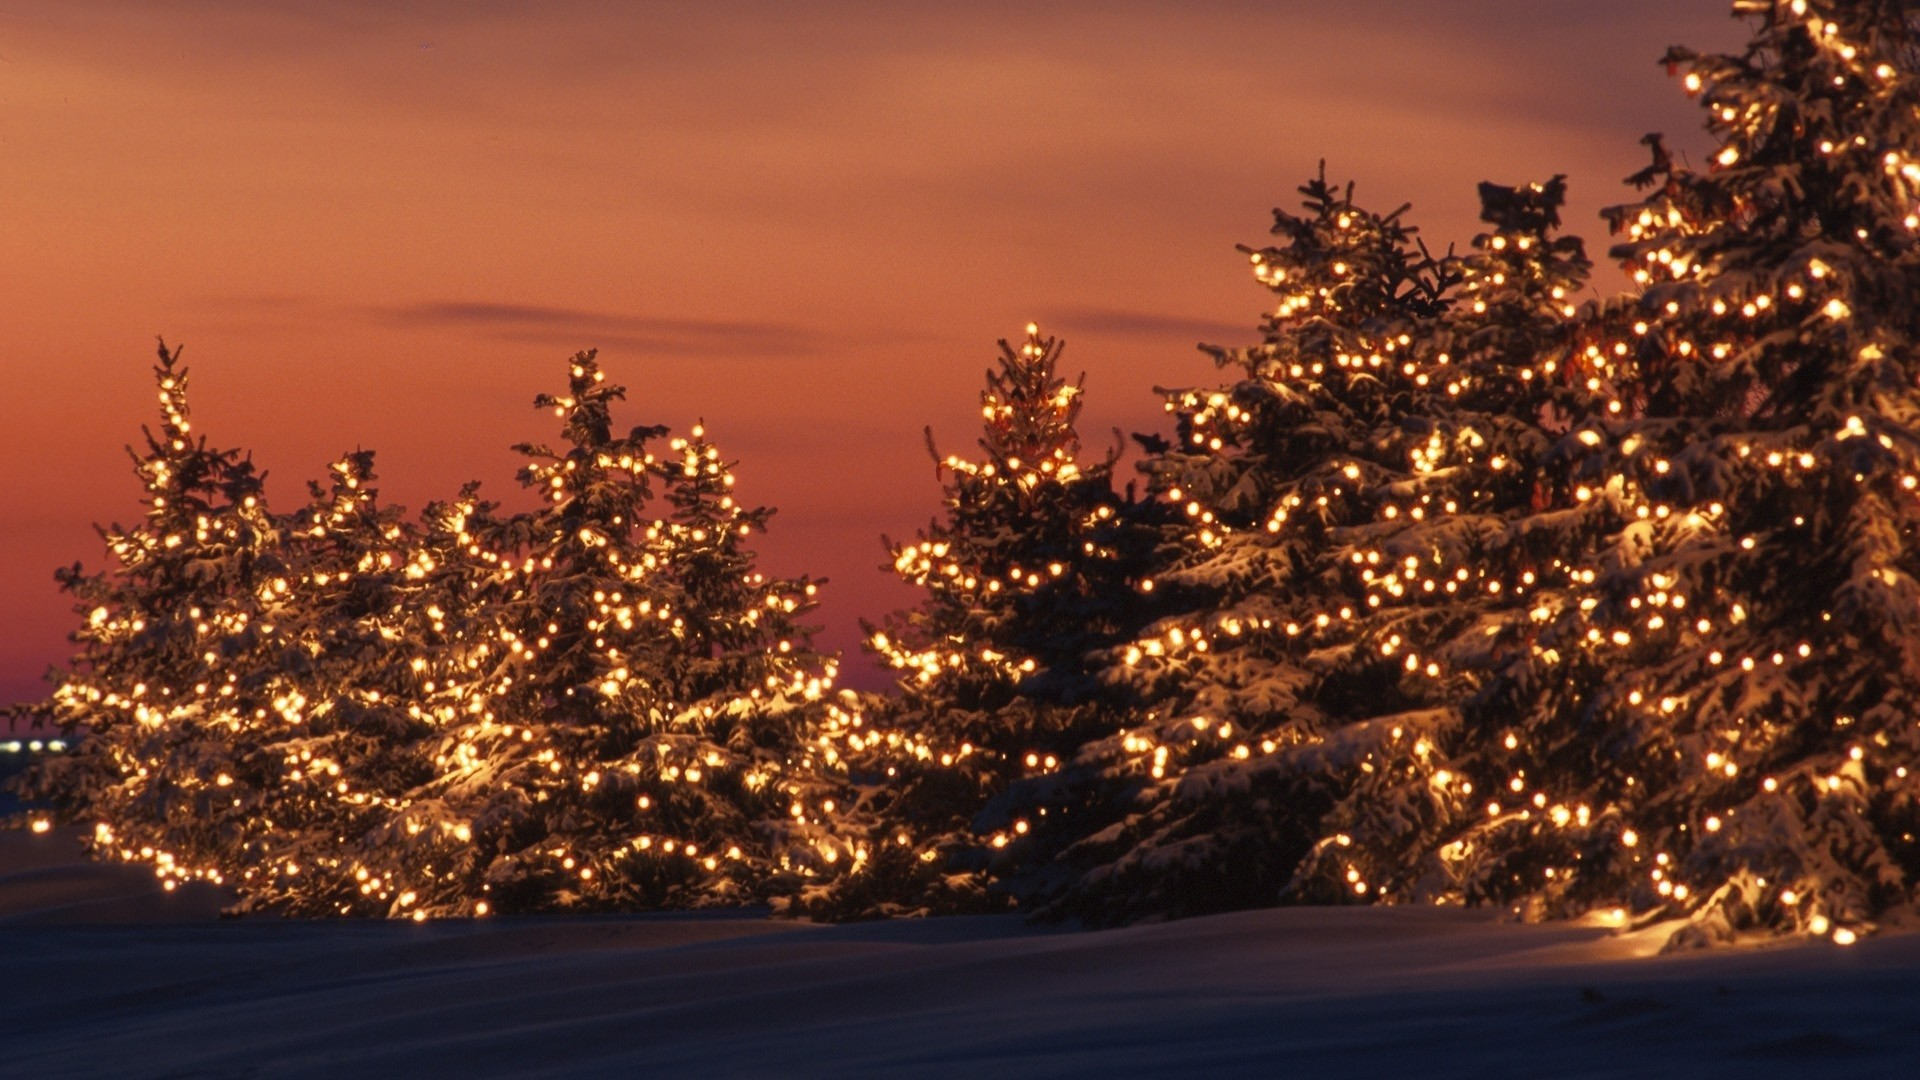 Christmas Hd Wallpaper Iphone.Christmas Wallpaper For Computer Wallpapertag